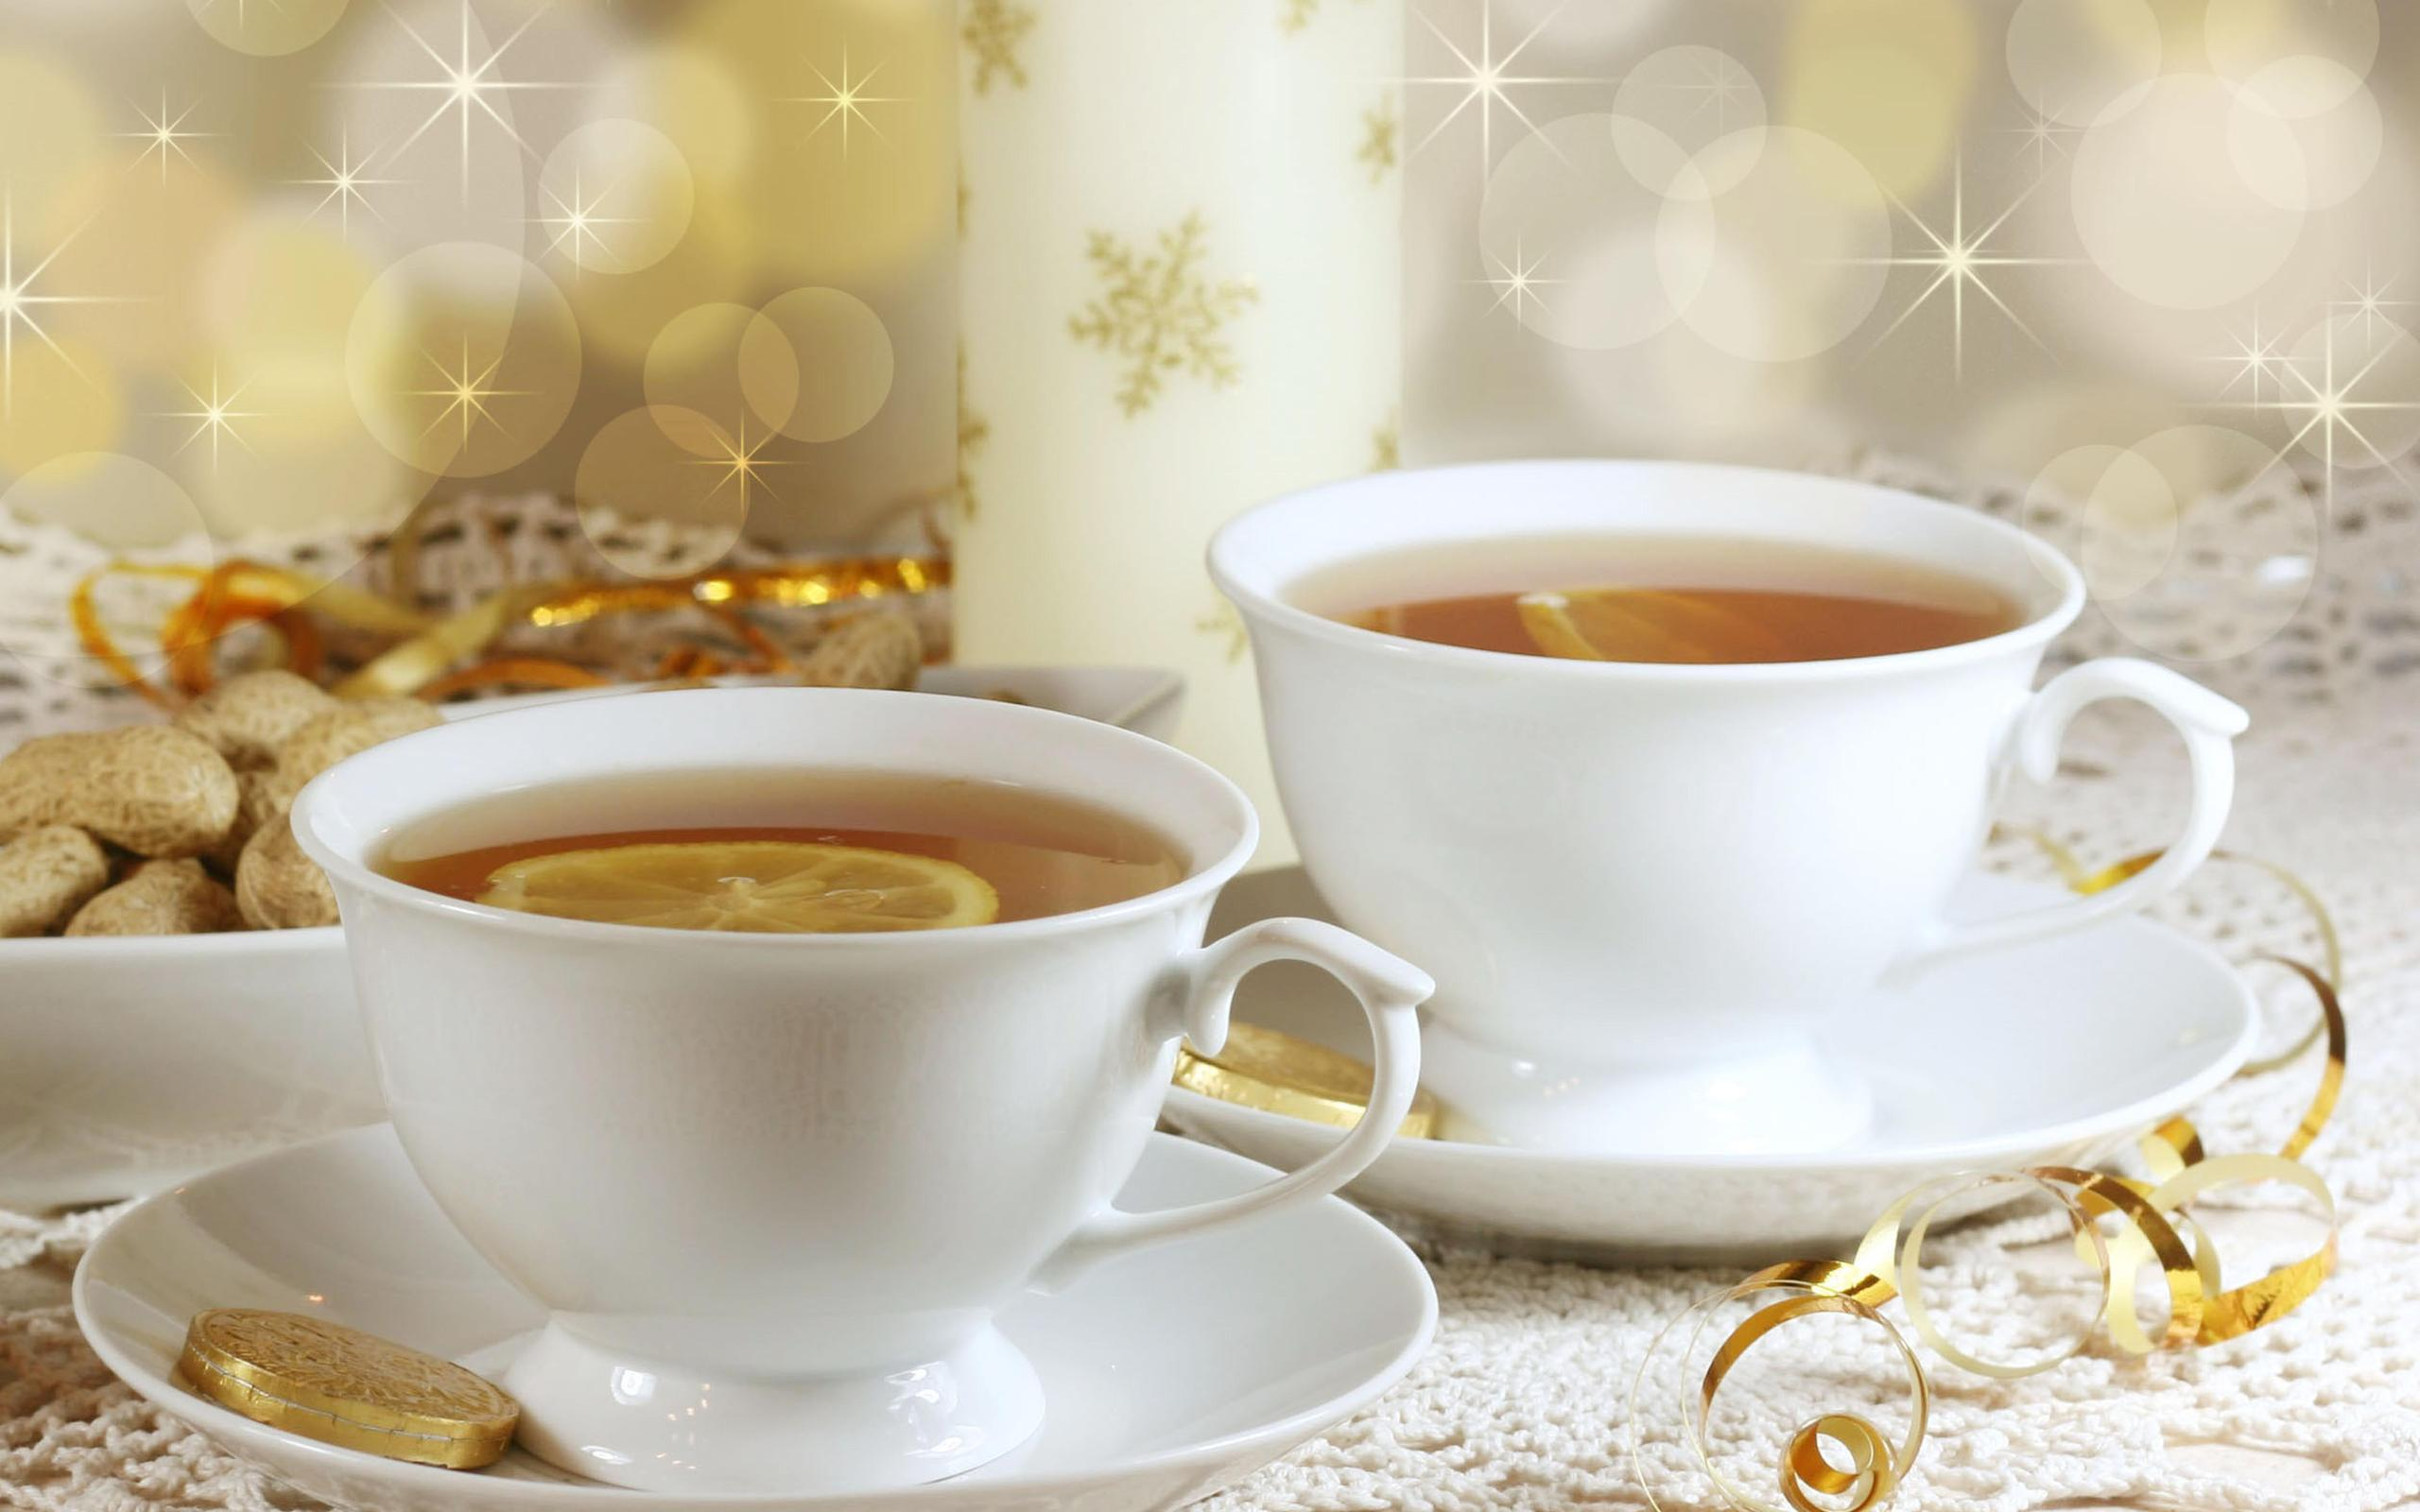 on August 12 2015 By Stephen Comments Off on Cup Of Tea Wallpapers 2560x1600